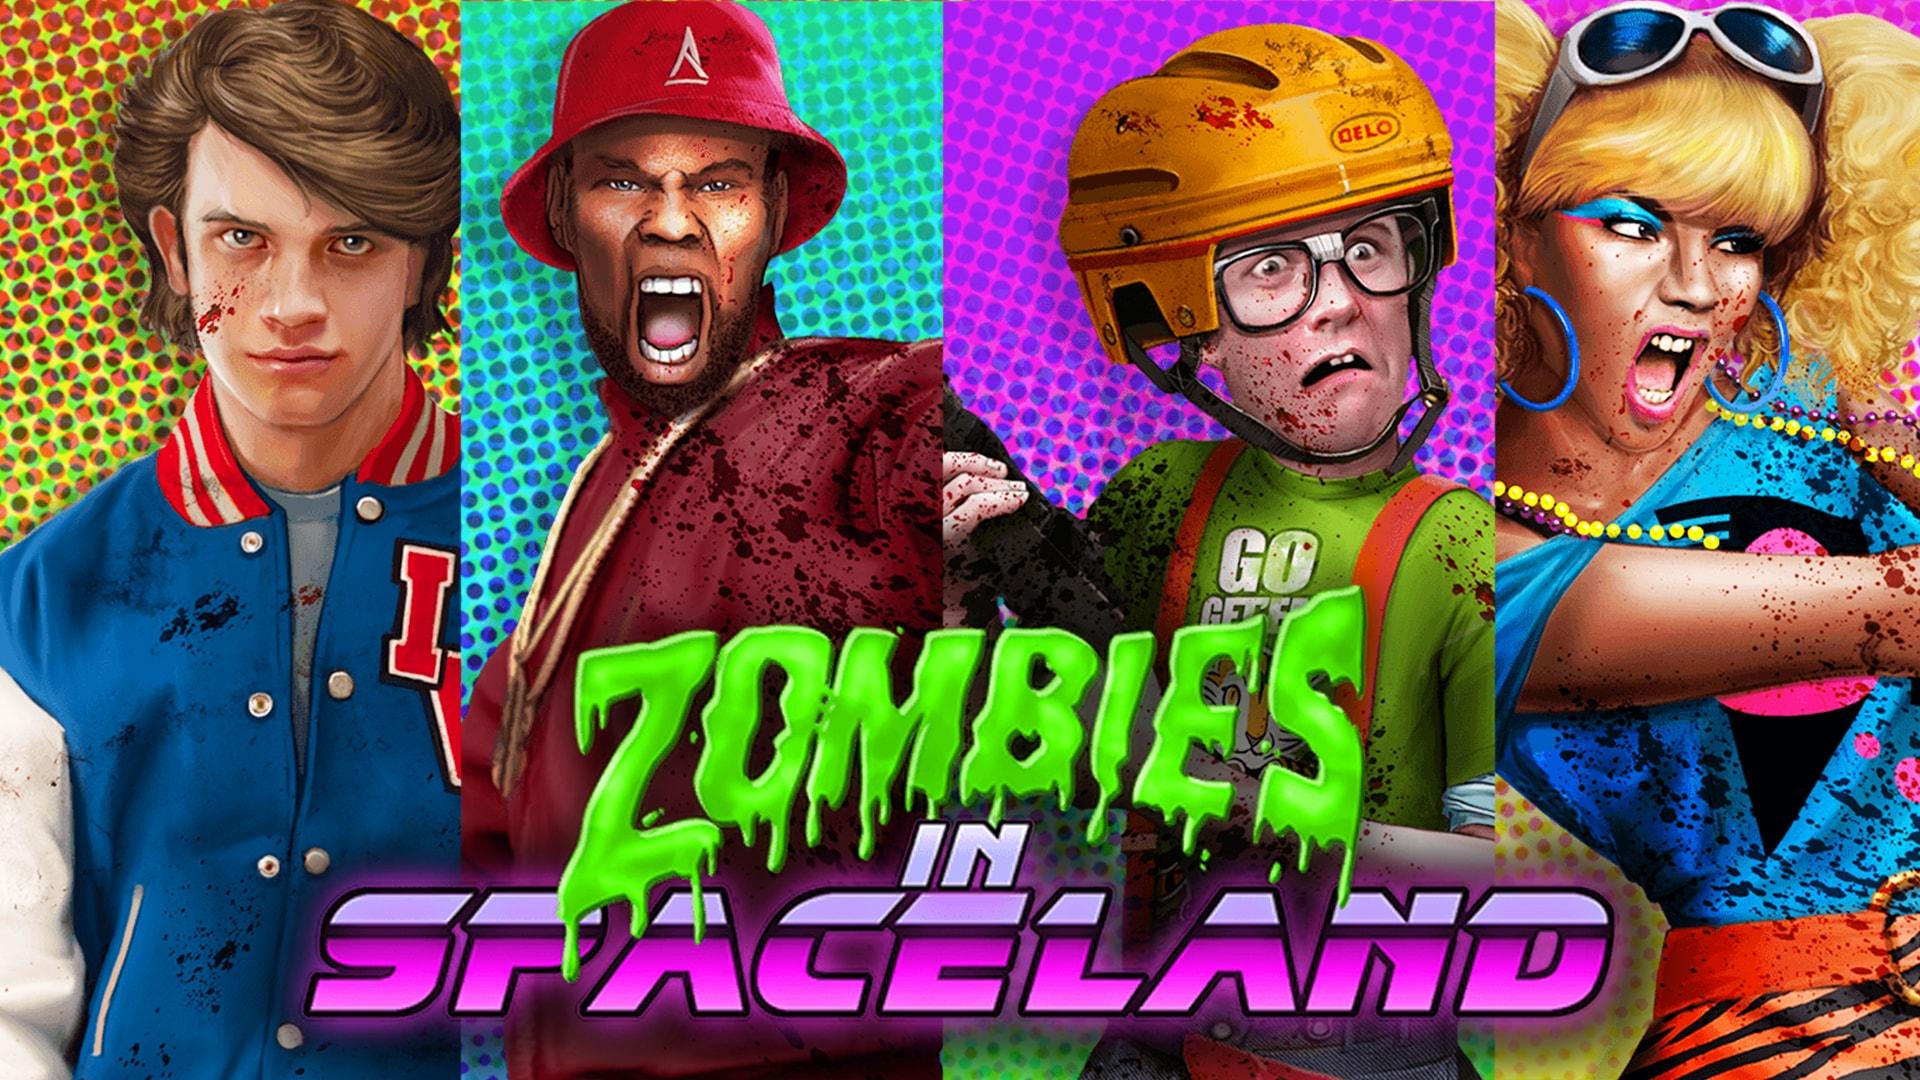 Call Of Duty With Zombies In Spaceland Retro Synthwave